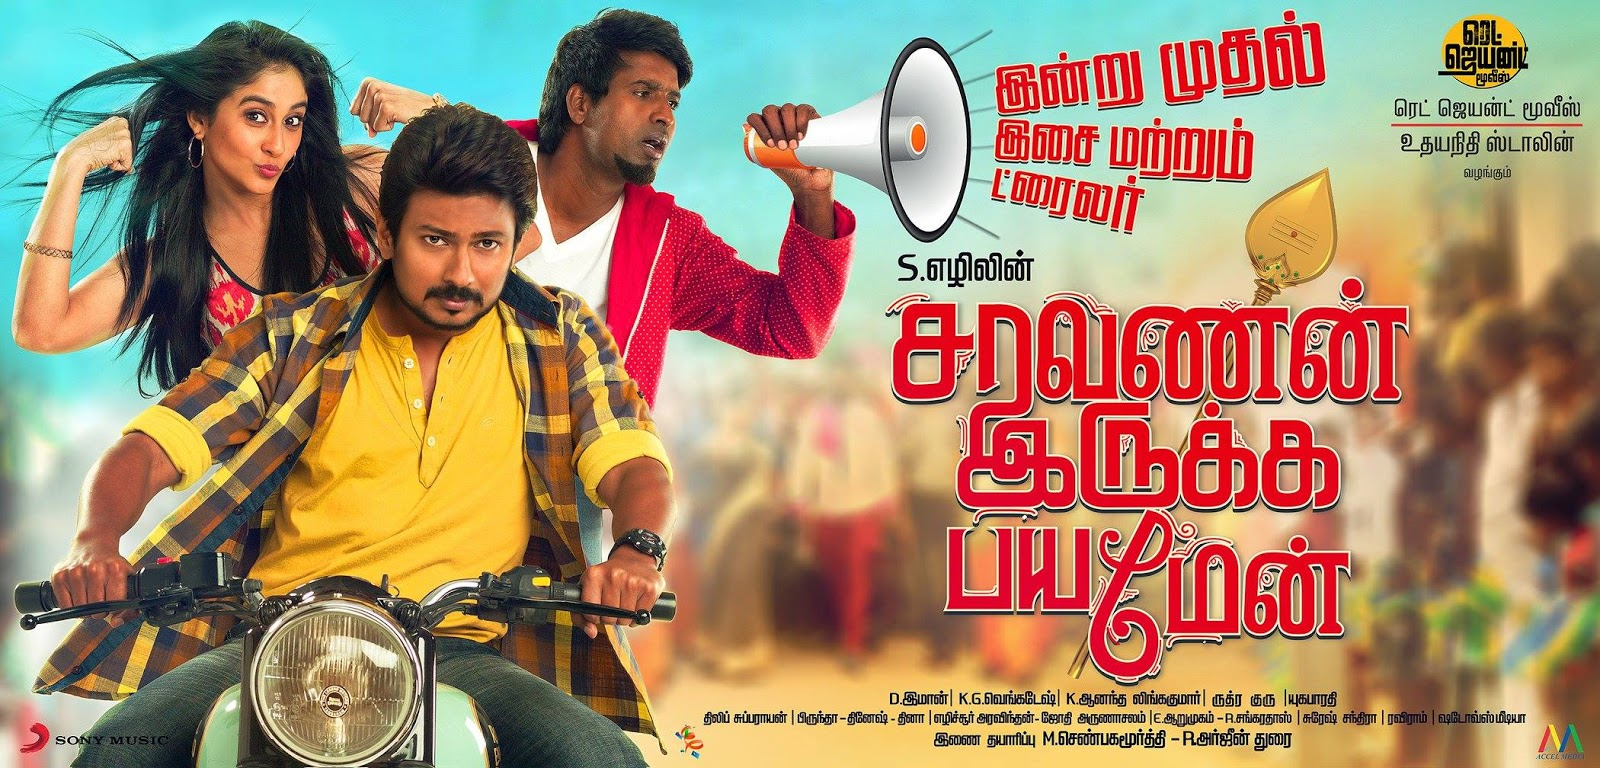 Udhyanidhi Stalin Saravanan Irukka Bayamaen Movie censor Report And Release Date